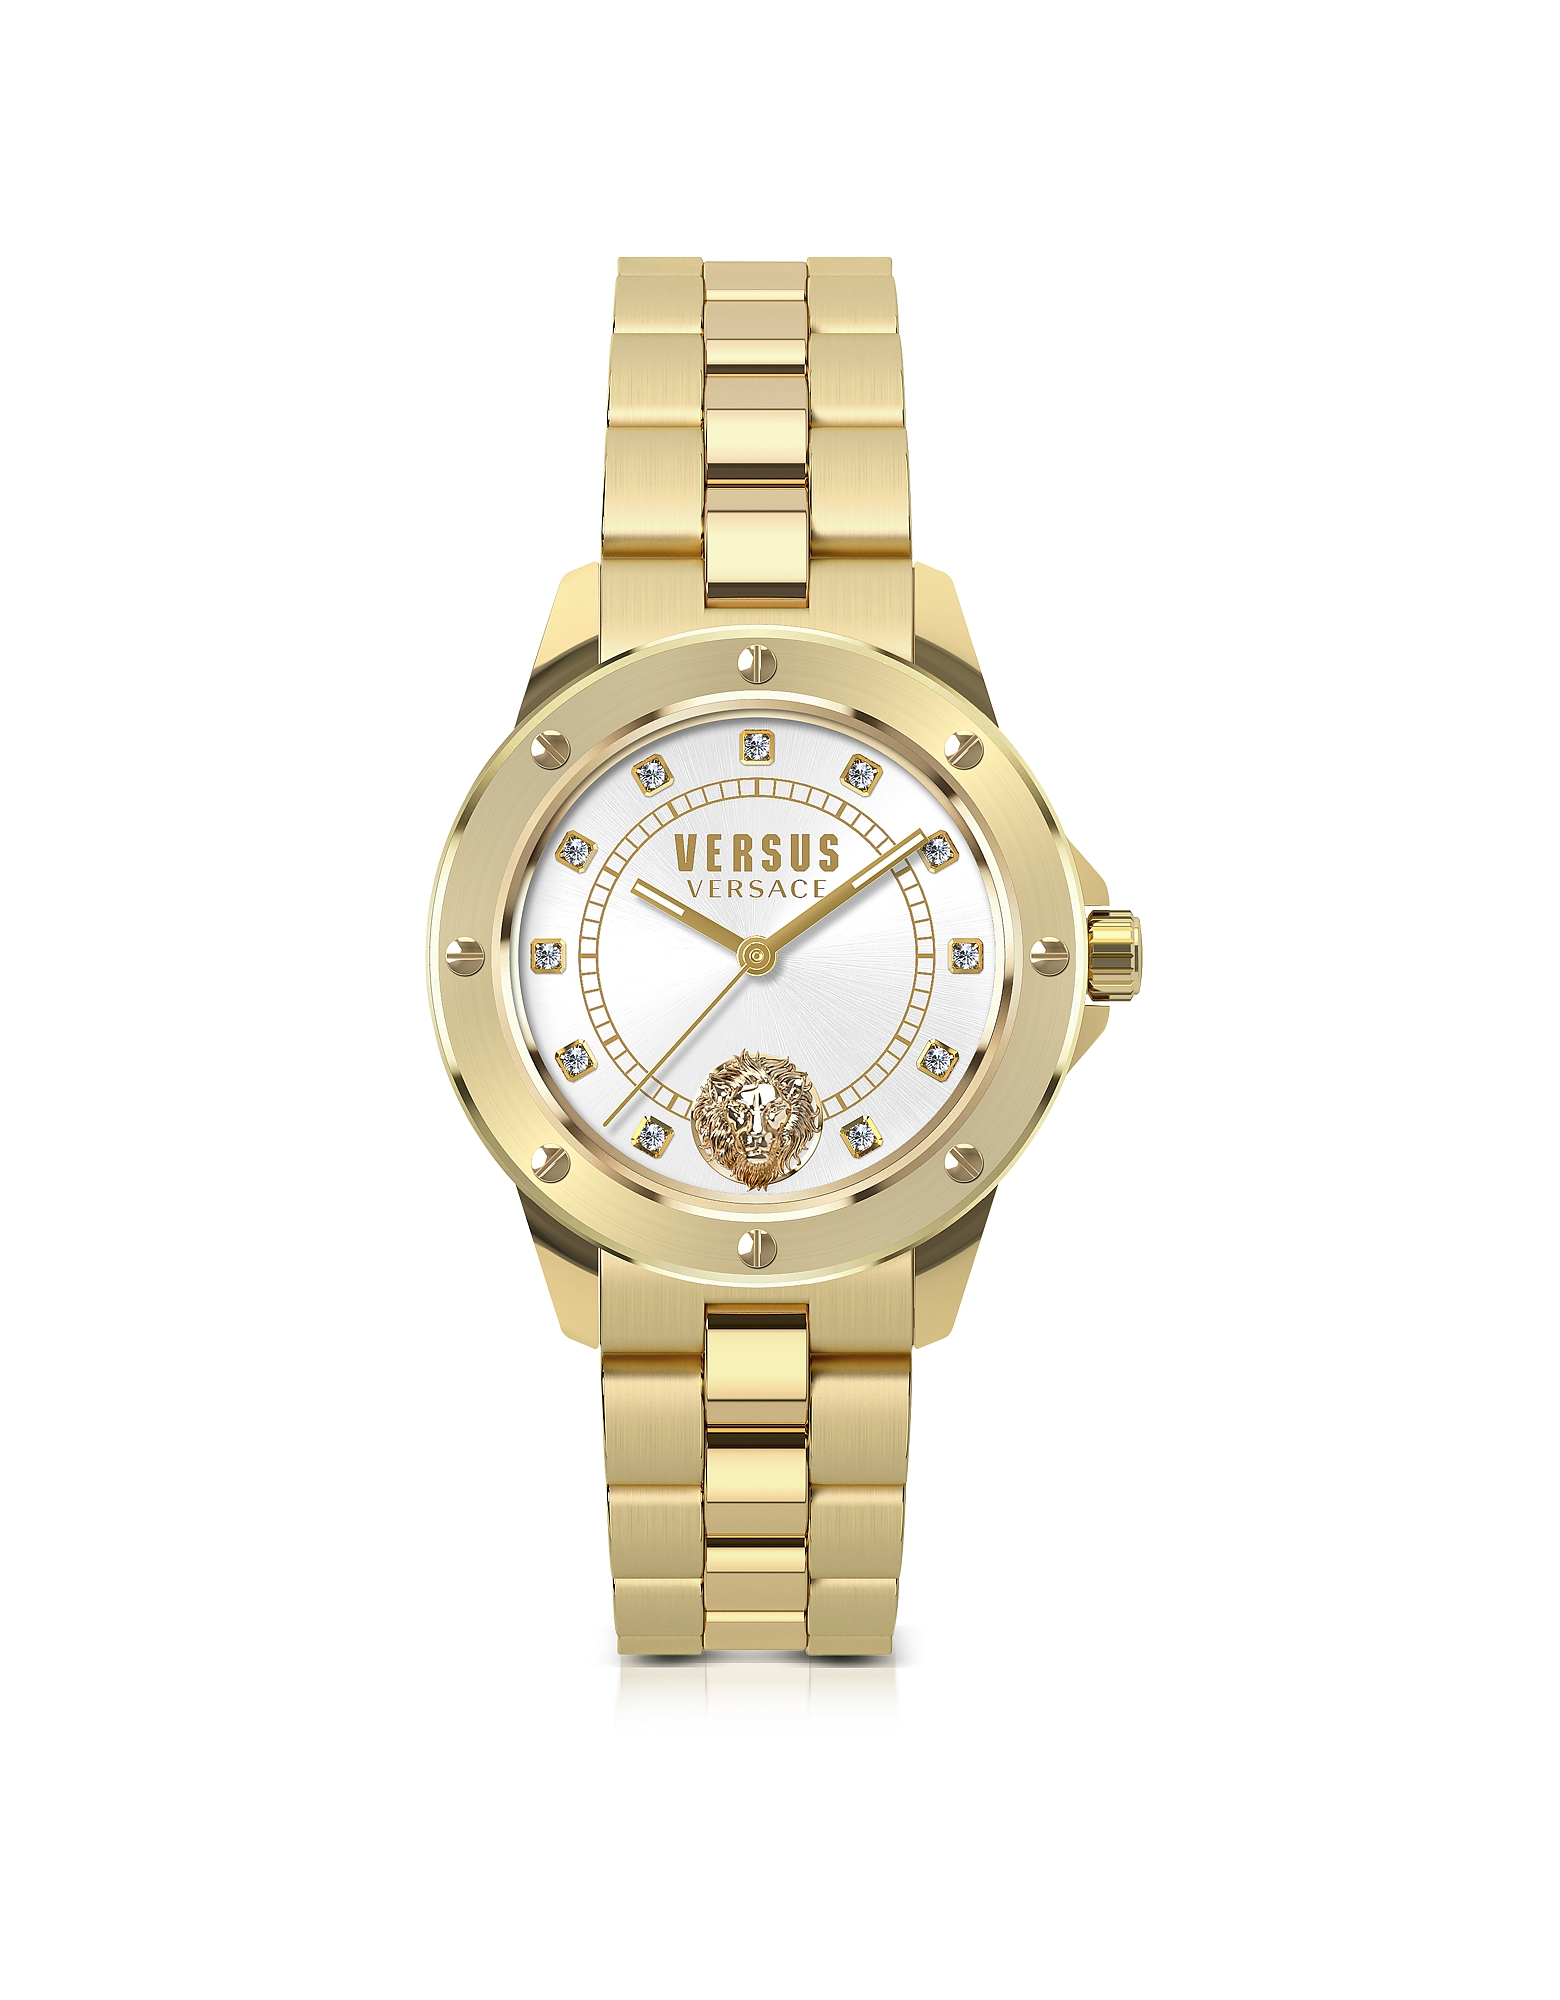 South Horizons Gold Tone Stainless Steel Women's Bracelet Watch w/White Dial and Crystals